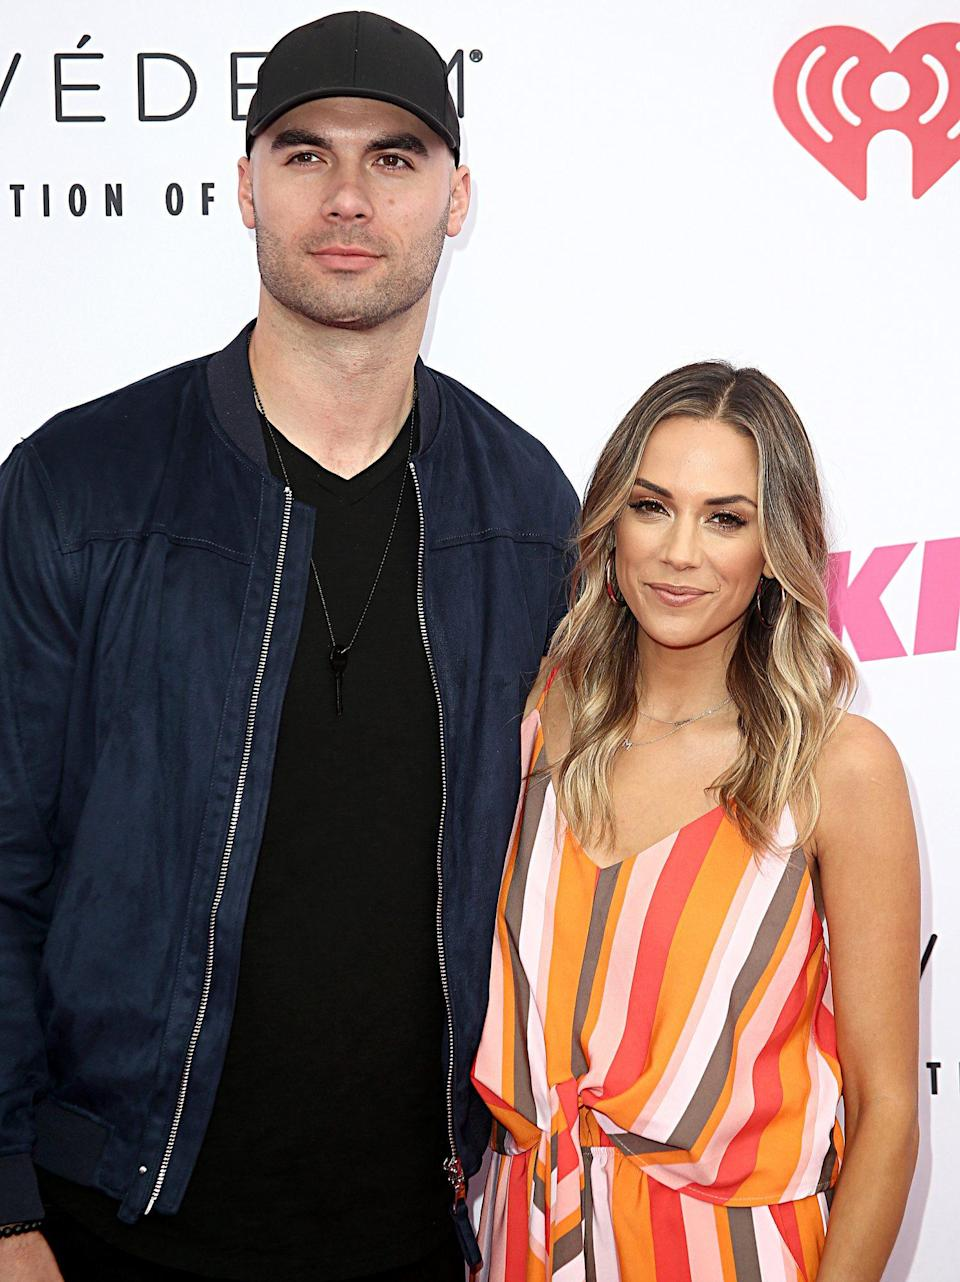 """<p>During an appearance on <em>Bachelor</em> alum Olivia Caridi's <i>Mouthing Off </i>podcast in September 2017, Kramer said that Caussin was """"<a href=""""https://people.com/country/jana-kramer-mike-caussin-actively-working-marriage/"""" rel=""""nofollow noopener"""" target=""""_blank"""" data-ylk=""""slk:still my husband, yes"""" class=""""link rapid-noclick-resp"""">still my husband, yes</a>.""""</p> <p>""""Everyone is like, 'Oh, your estranged husband' because we're technically separated,'"""" she said. """"We didn't separate in the court.""""</p> <p>After Caussin left rehab, Kramer said they focused on """"actively working"""" through their issues.</p> <p>""""I'm just <a href=""""https://people.com/babies/jana-kramer-fathers-day-mike-caussin-jolie/"""" rel=""""nofollow noopener"""" target=""""_blank"""" data-ylk=""""slk:focusing on our family"""" class=""""link rapid-noclick-resp"""">focusing on our family</a> and trying to figure it out,"""" Kramer said. """"It's day-by-day. We're not divorced, he's not my estranged husband, [and] he's very much in my life.""""</p> <p>""""Legally, he is my husband,"""" she continued. """"I have a ring on my finger. It's hard, every day — some days I'm like, 'I can't do this' … But other days I'm like, 'No, fight for it. It's for our family.' Cause I've given up so easily in the past before, so I really want to sit in the trenches and fight for it.""""</p>"""